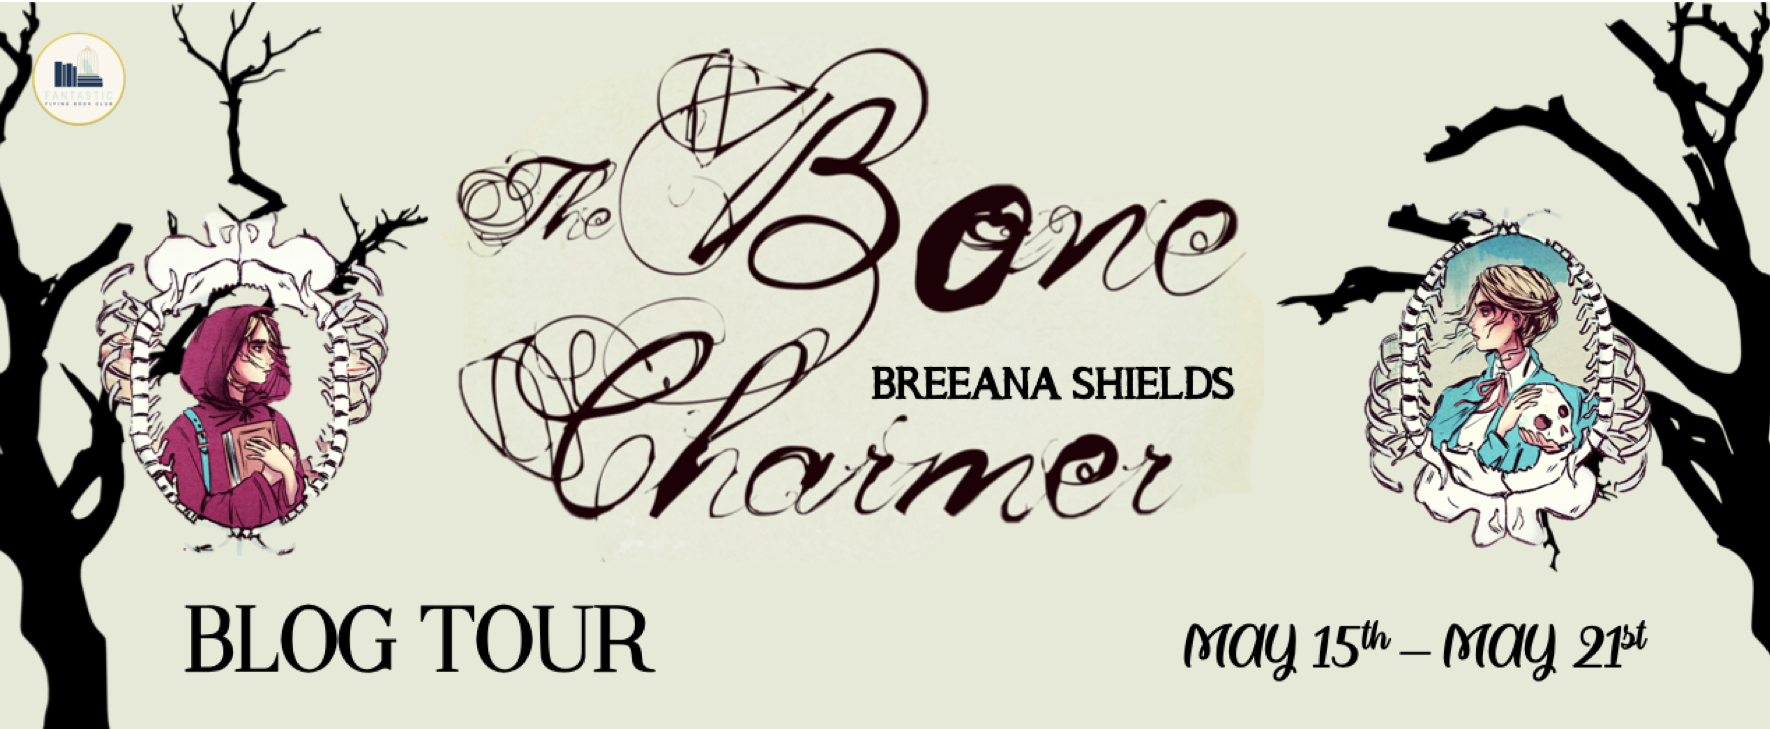 Blog Tour: The Bone Charmer by Breeana Shields